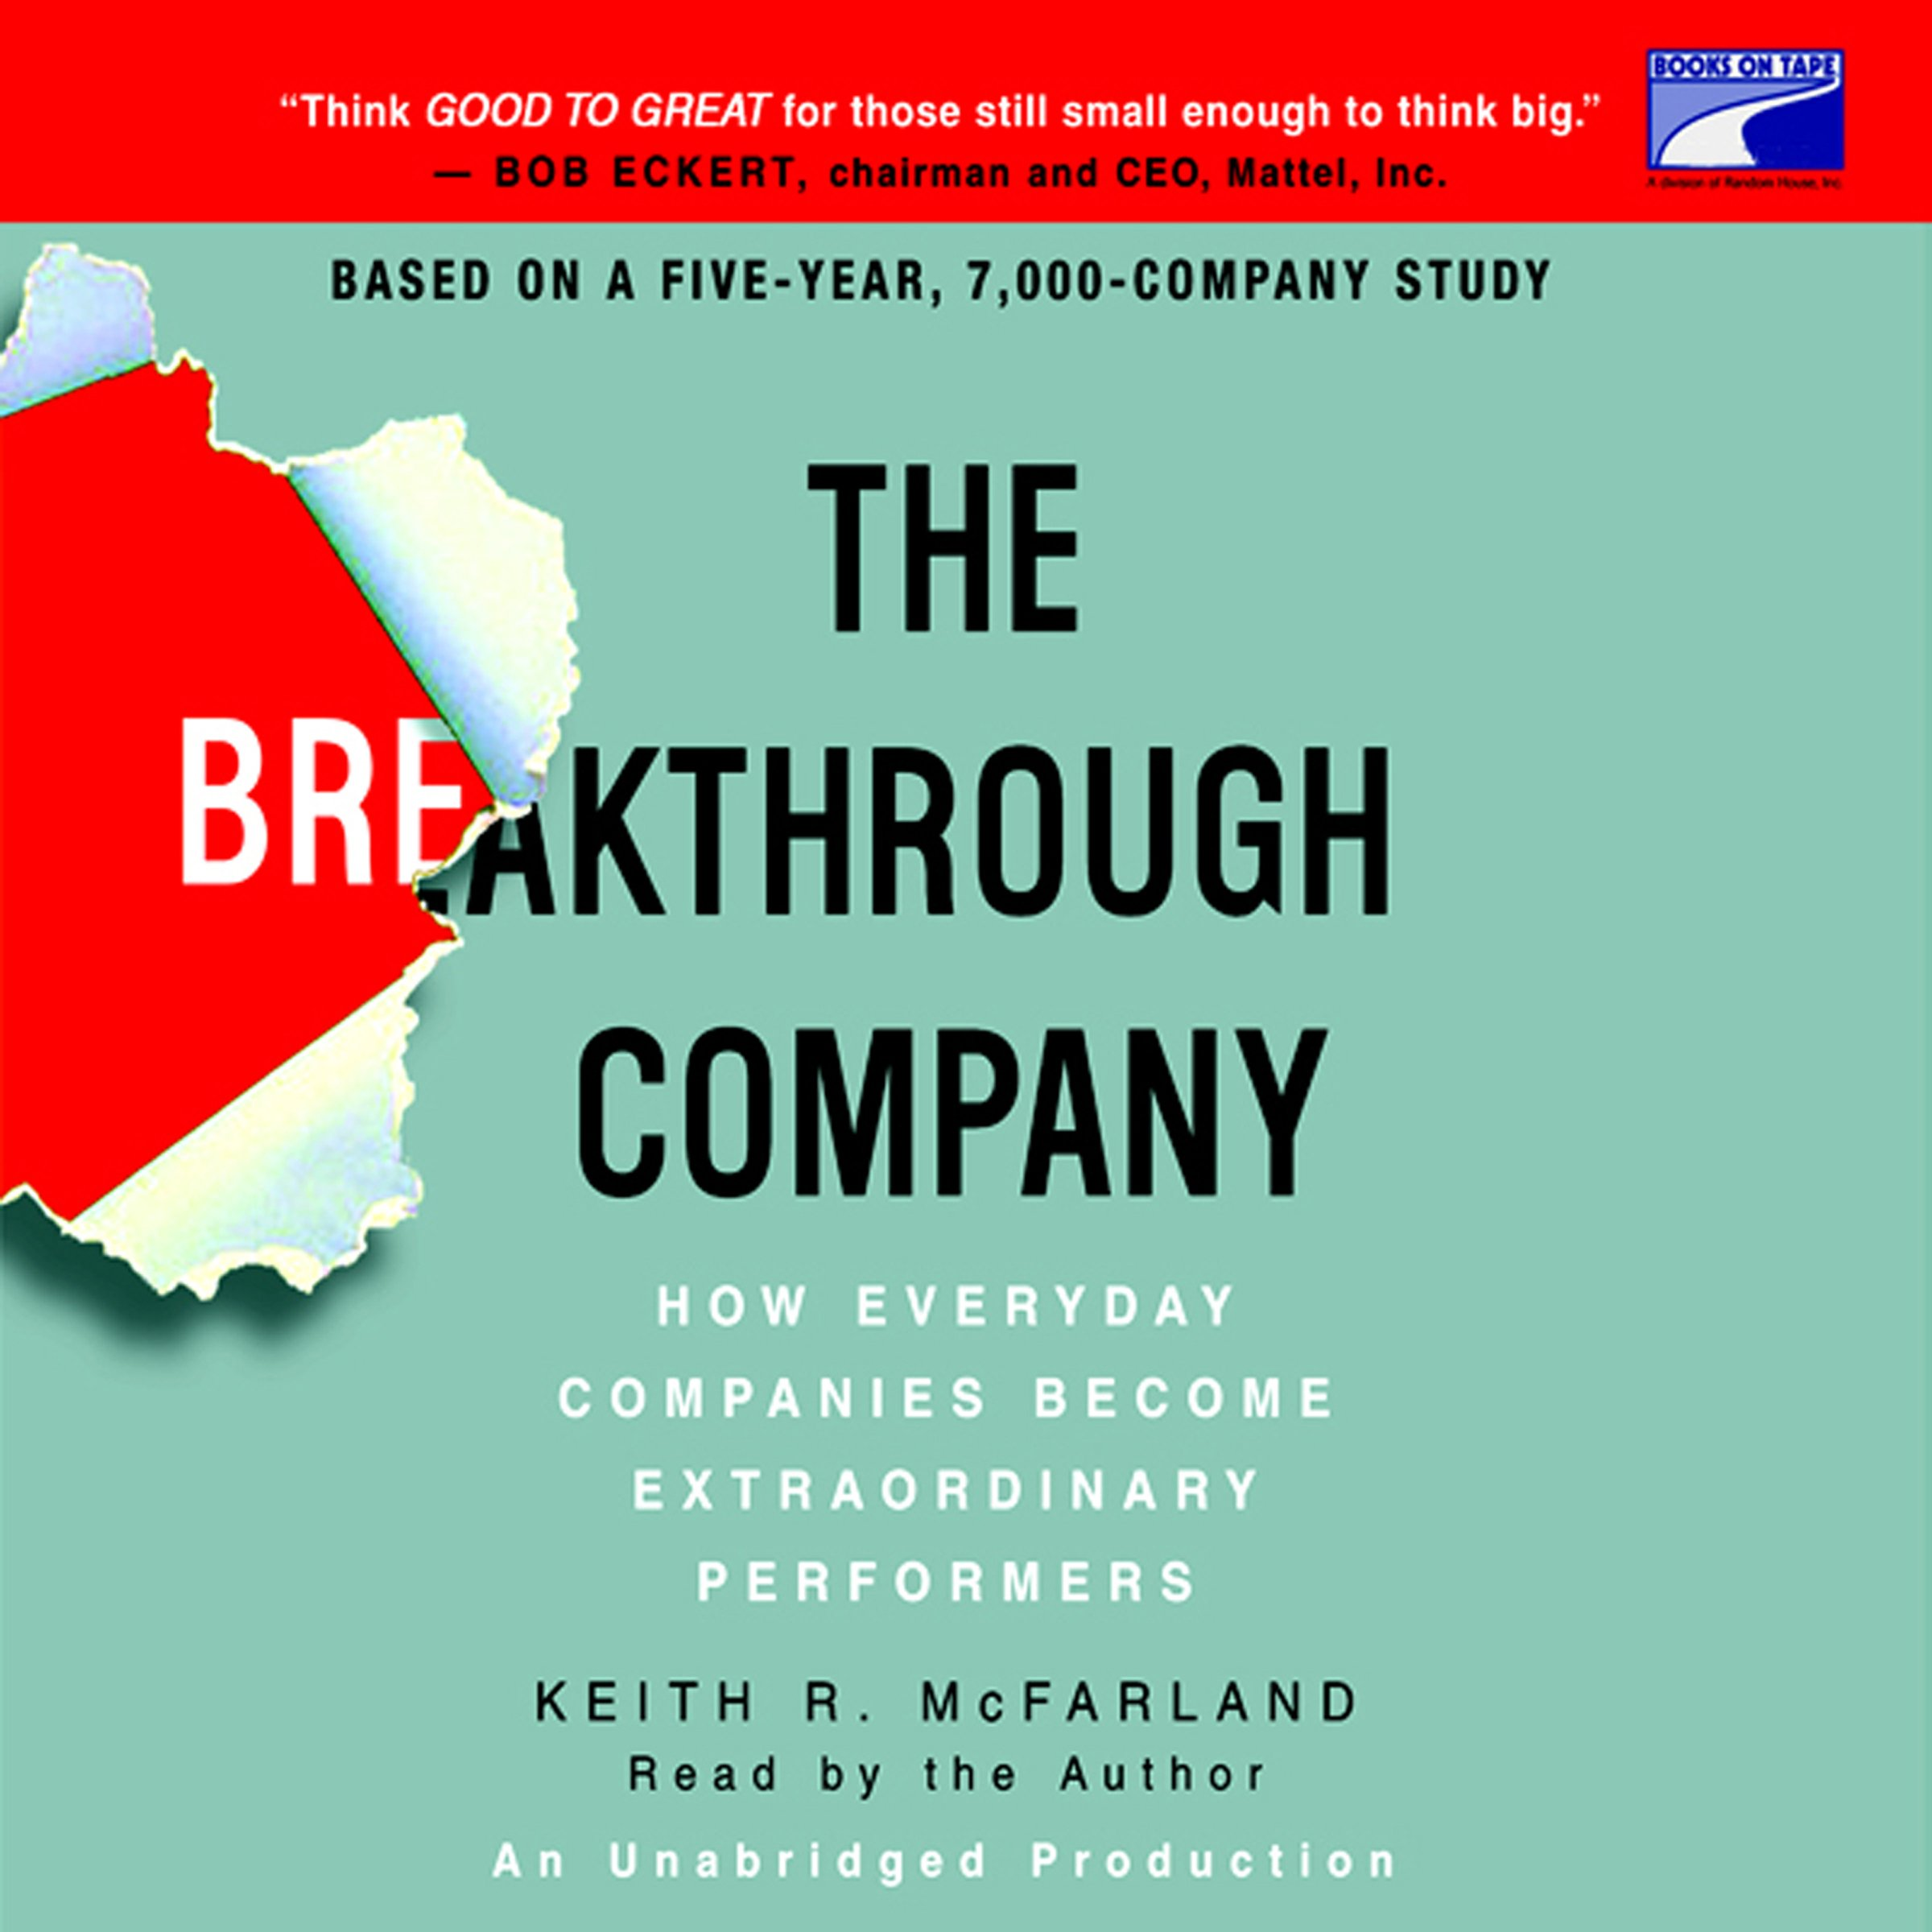 The Breakthrough Company: How Everyday Companies Become Extraordinary Performers